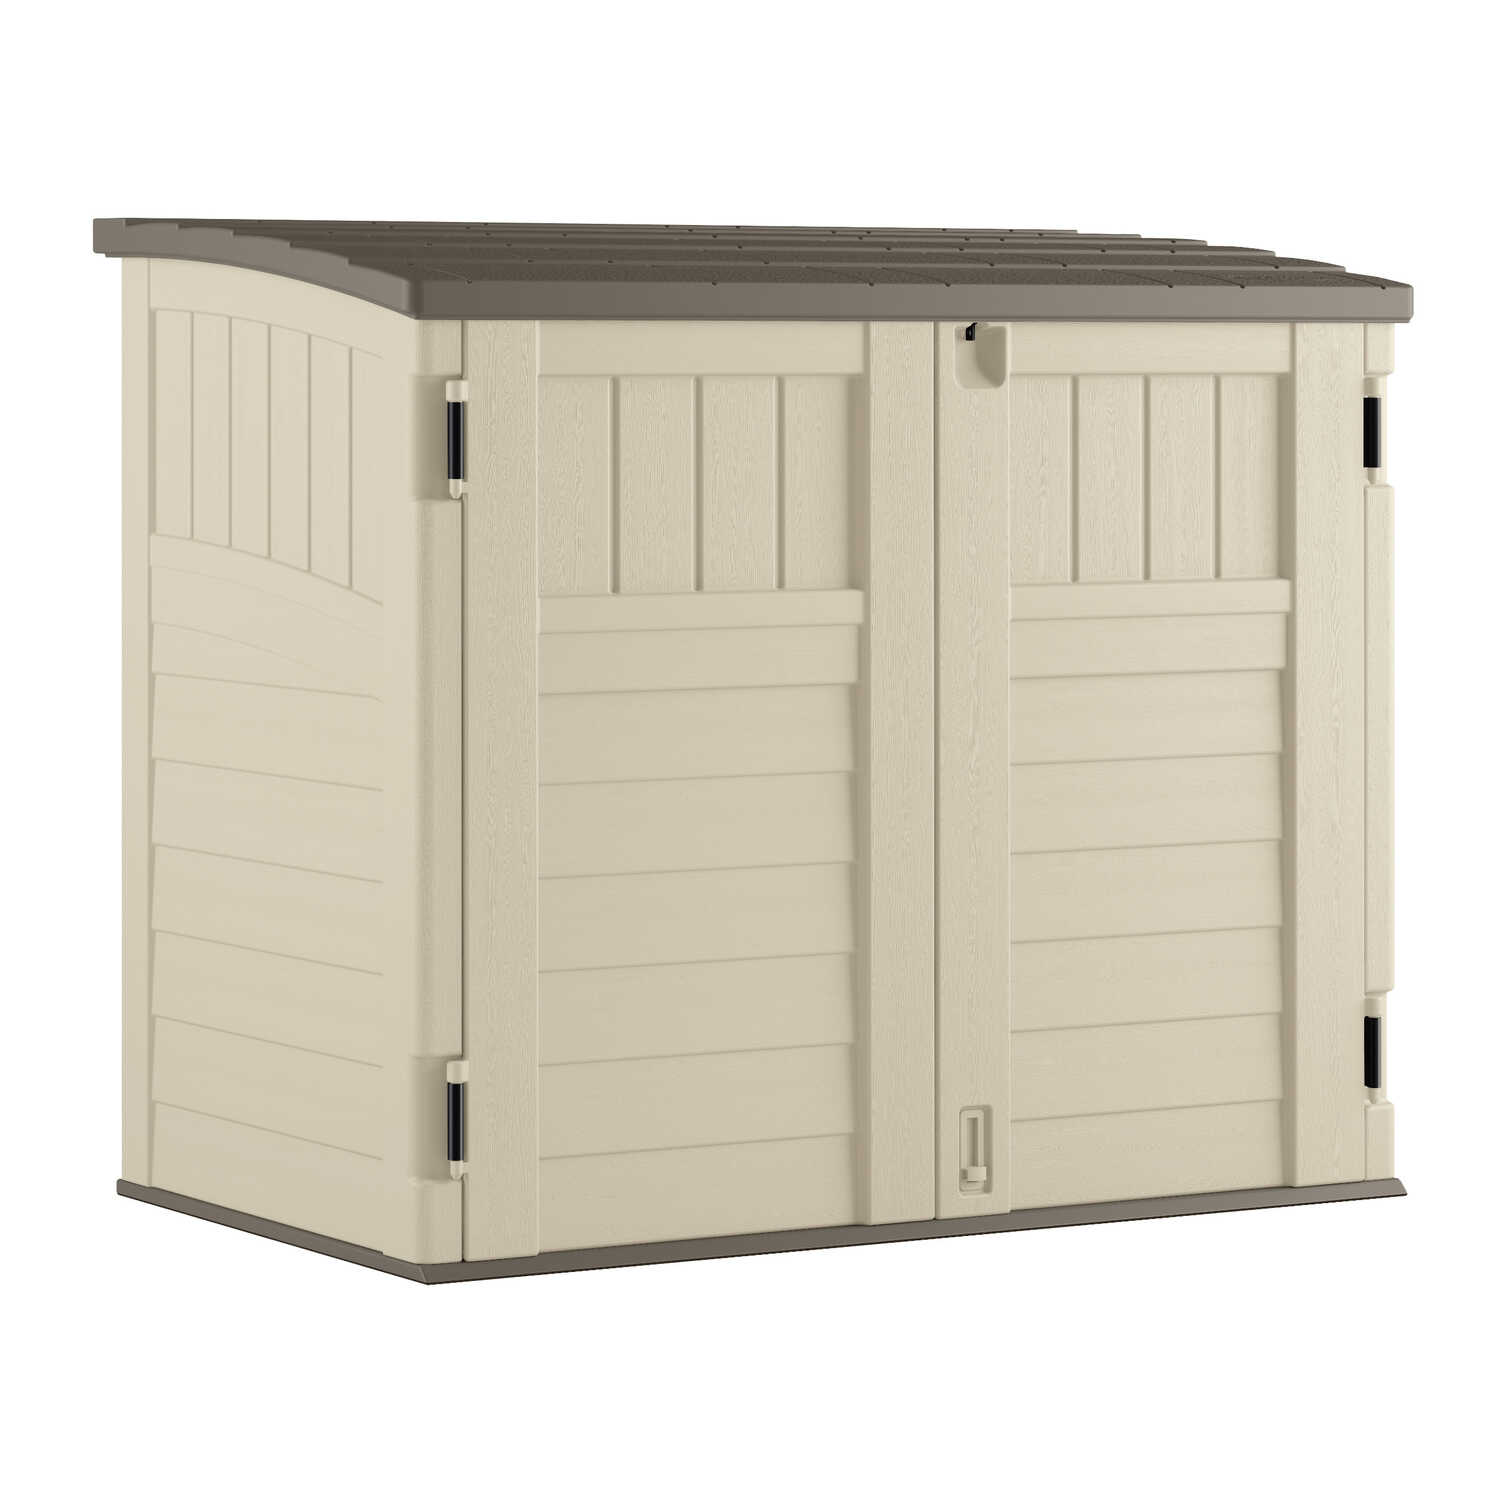 Suncast  45-1/2 in. H x 53 in. W x 32-1/4 in. D Vanilla  Resin  Horizontal Storage Shed